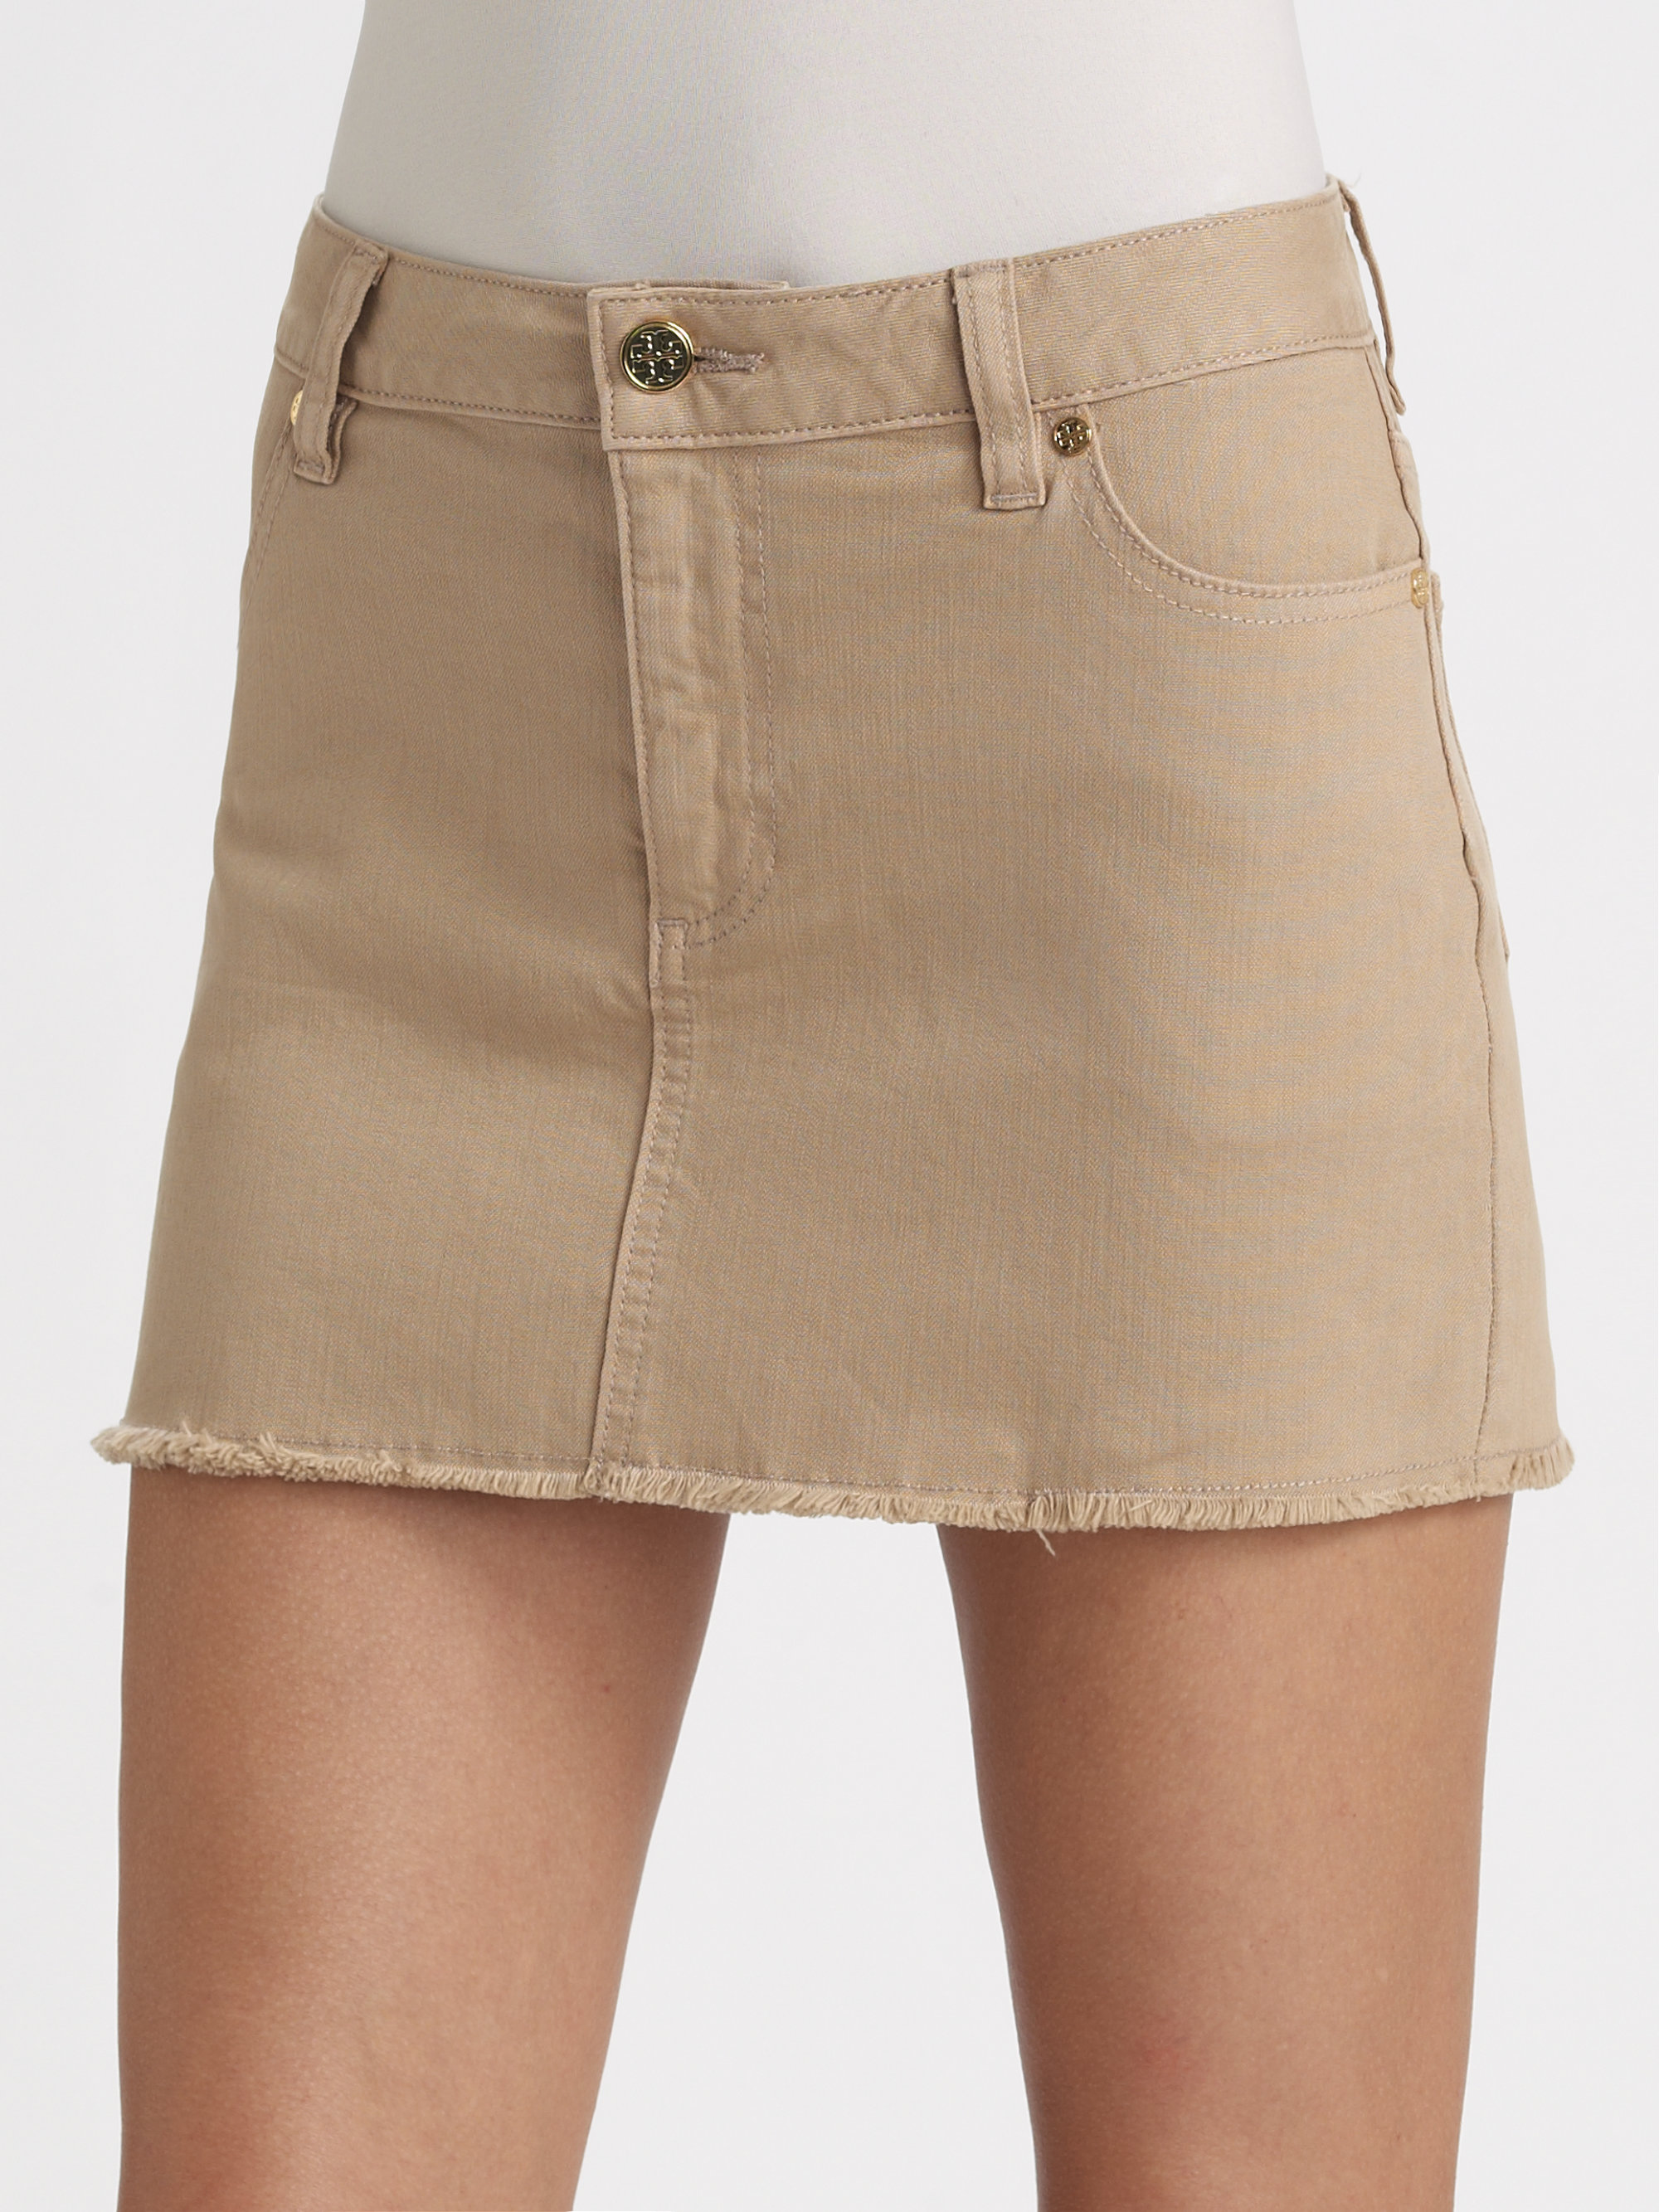 Crafted from a tightly woven cotton fabric, this miniskirt is styled with a neat A-line fit that allows for ease of movement. The construction draws inspiration from classic expedition clothing, and is therefore styled with a buckled belt that allows for the skirt to stay adjusted and in place when worn with tucked-in layers both light summer shirts or thicker winter knits.